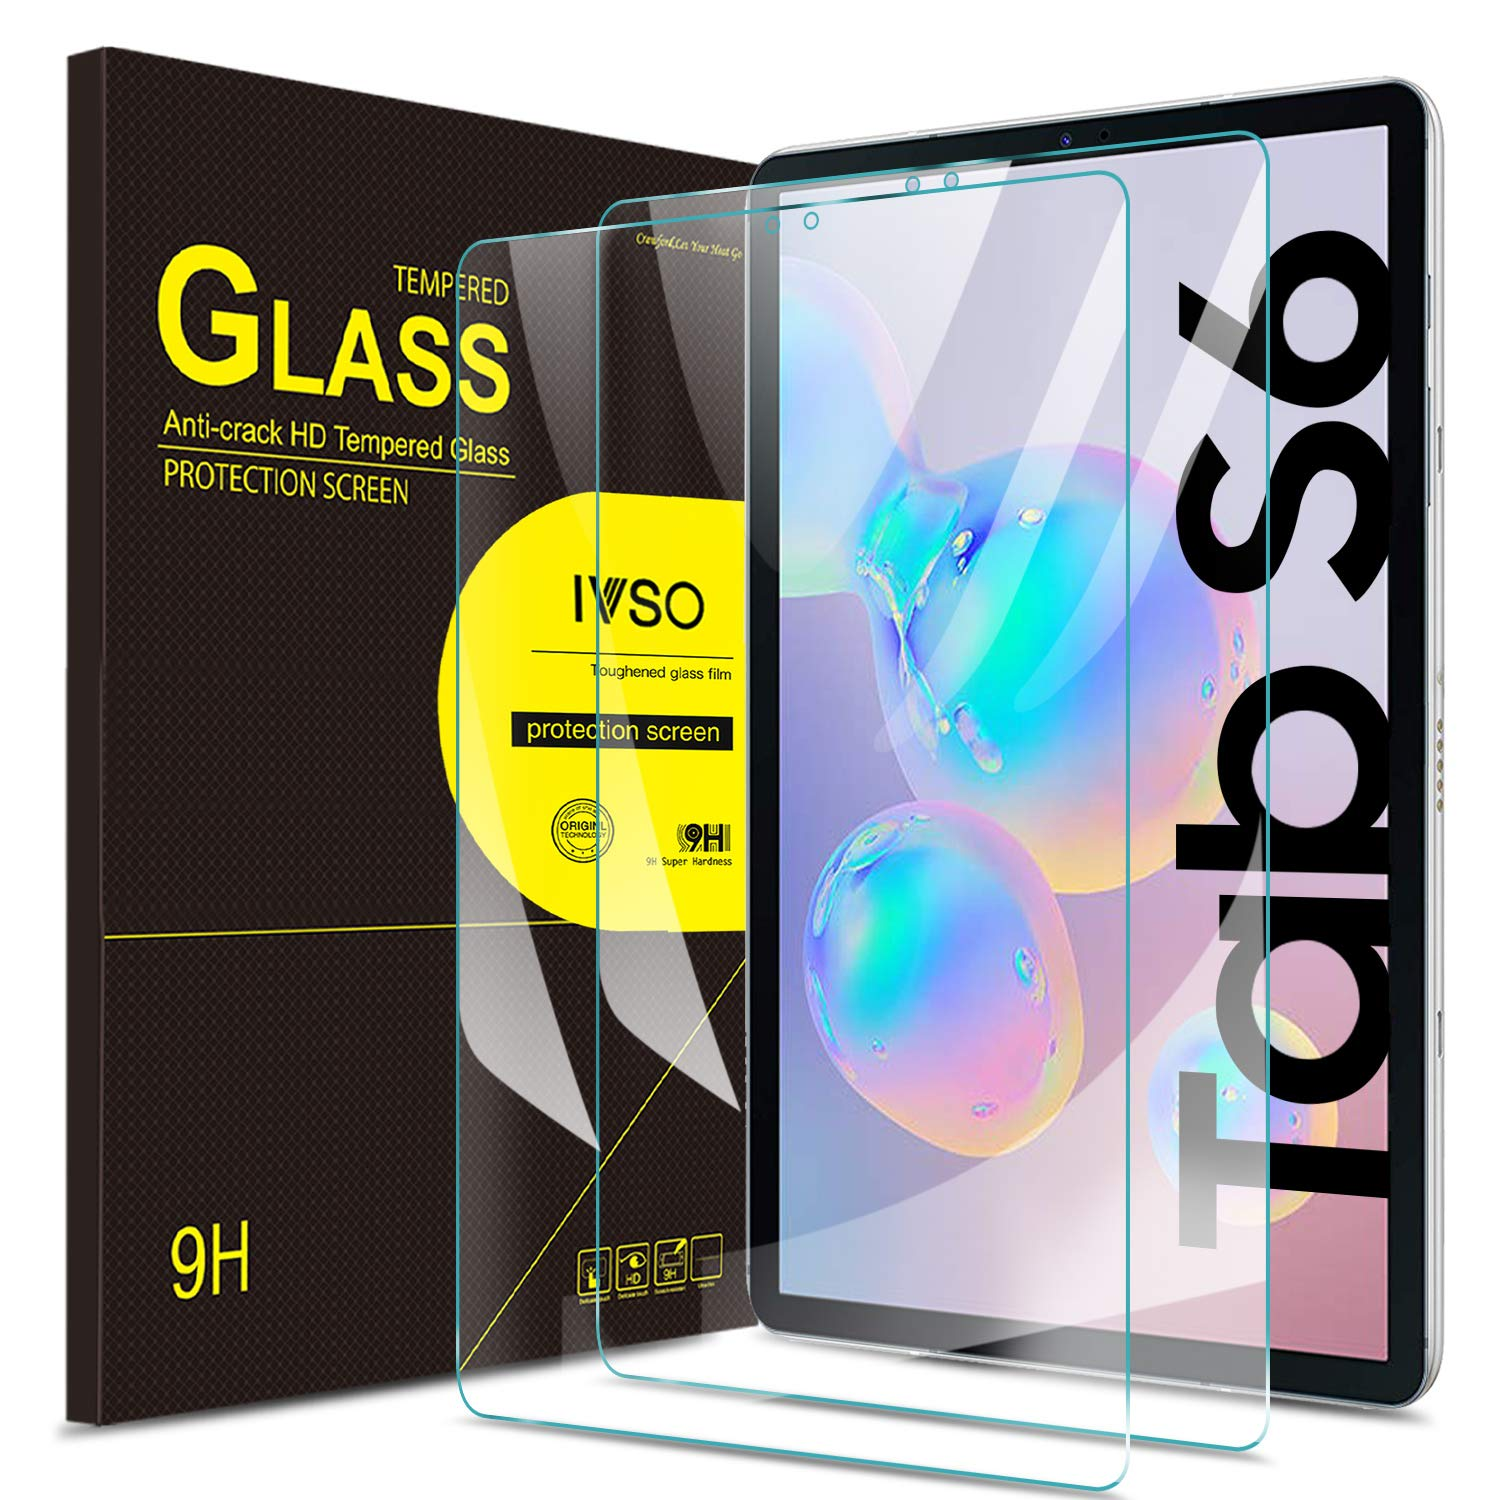 IVSO Screen Protector for Samsung Galaxy Tab S6 10.5 / Samsung Galaxy Tab S5e, Clear Tempered-Glass Flim Screen Protector for Samsung Galaxy Tab S6 SM-T860/T865 10.5 2019, 2 Pack